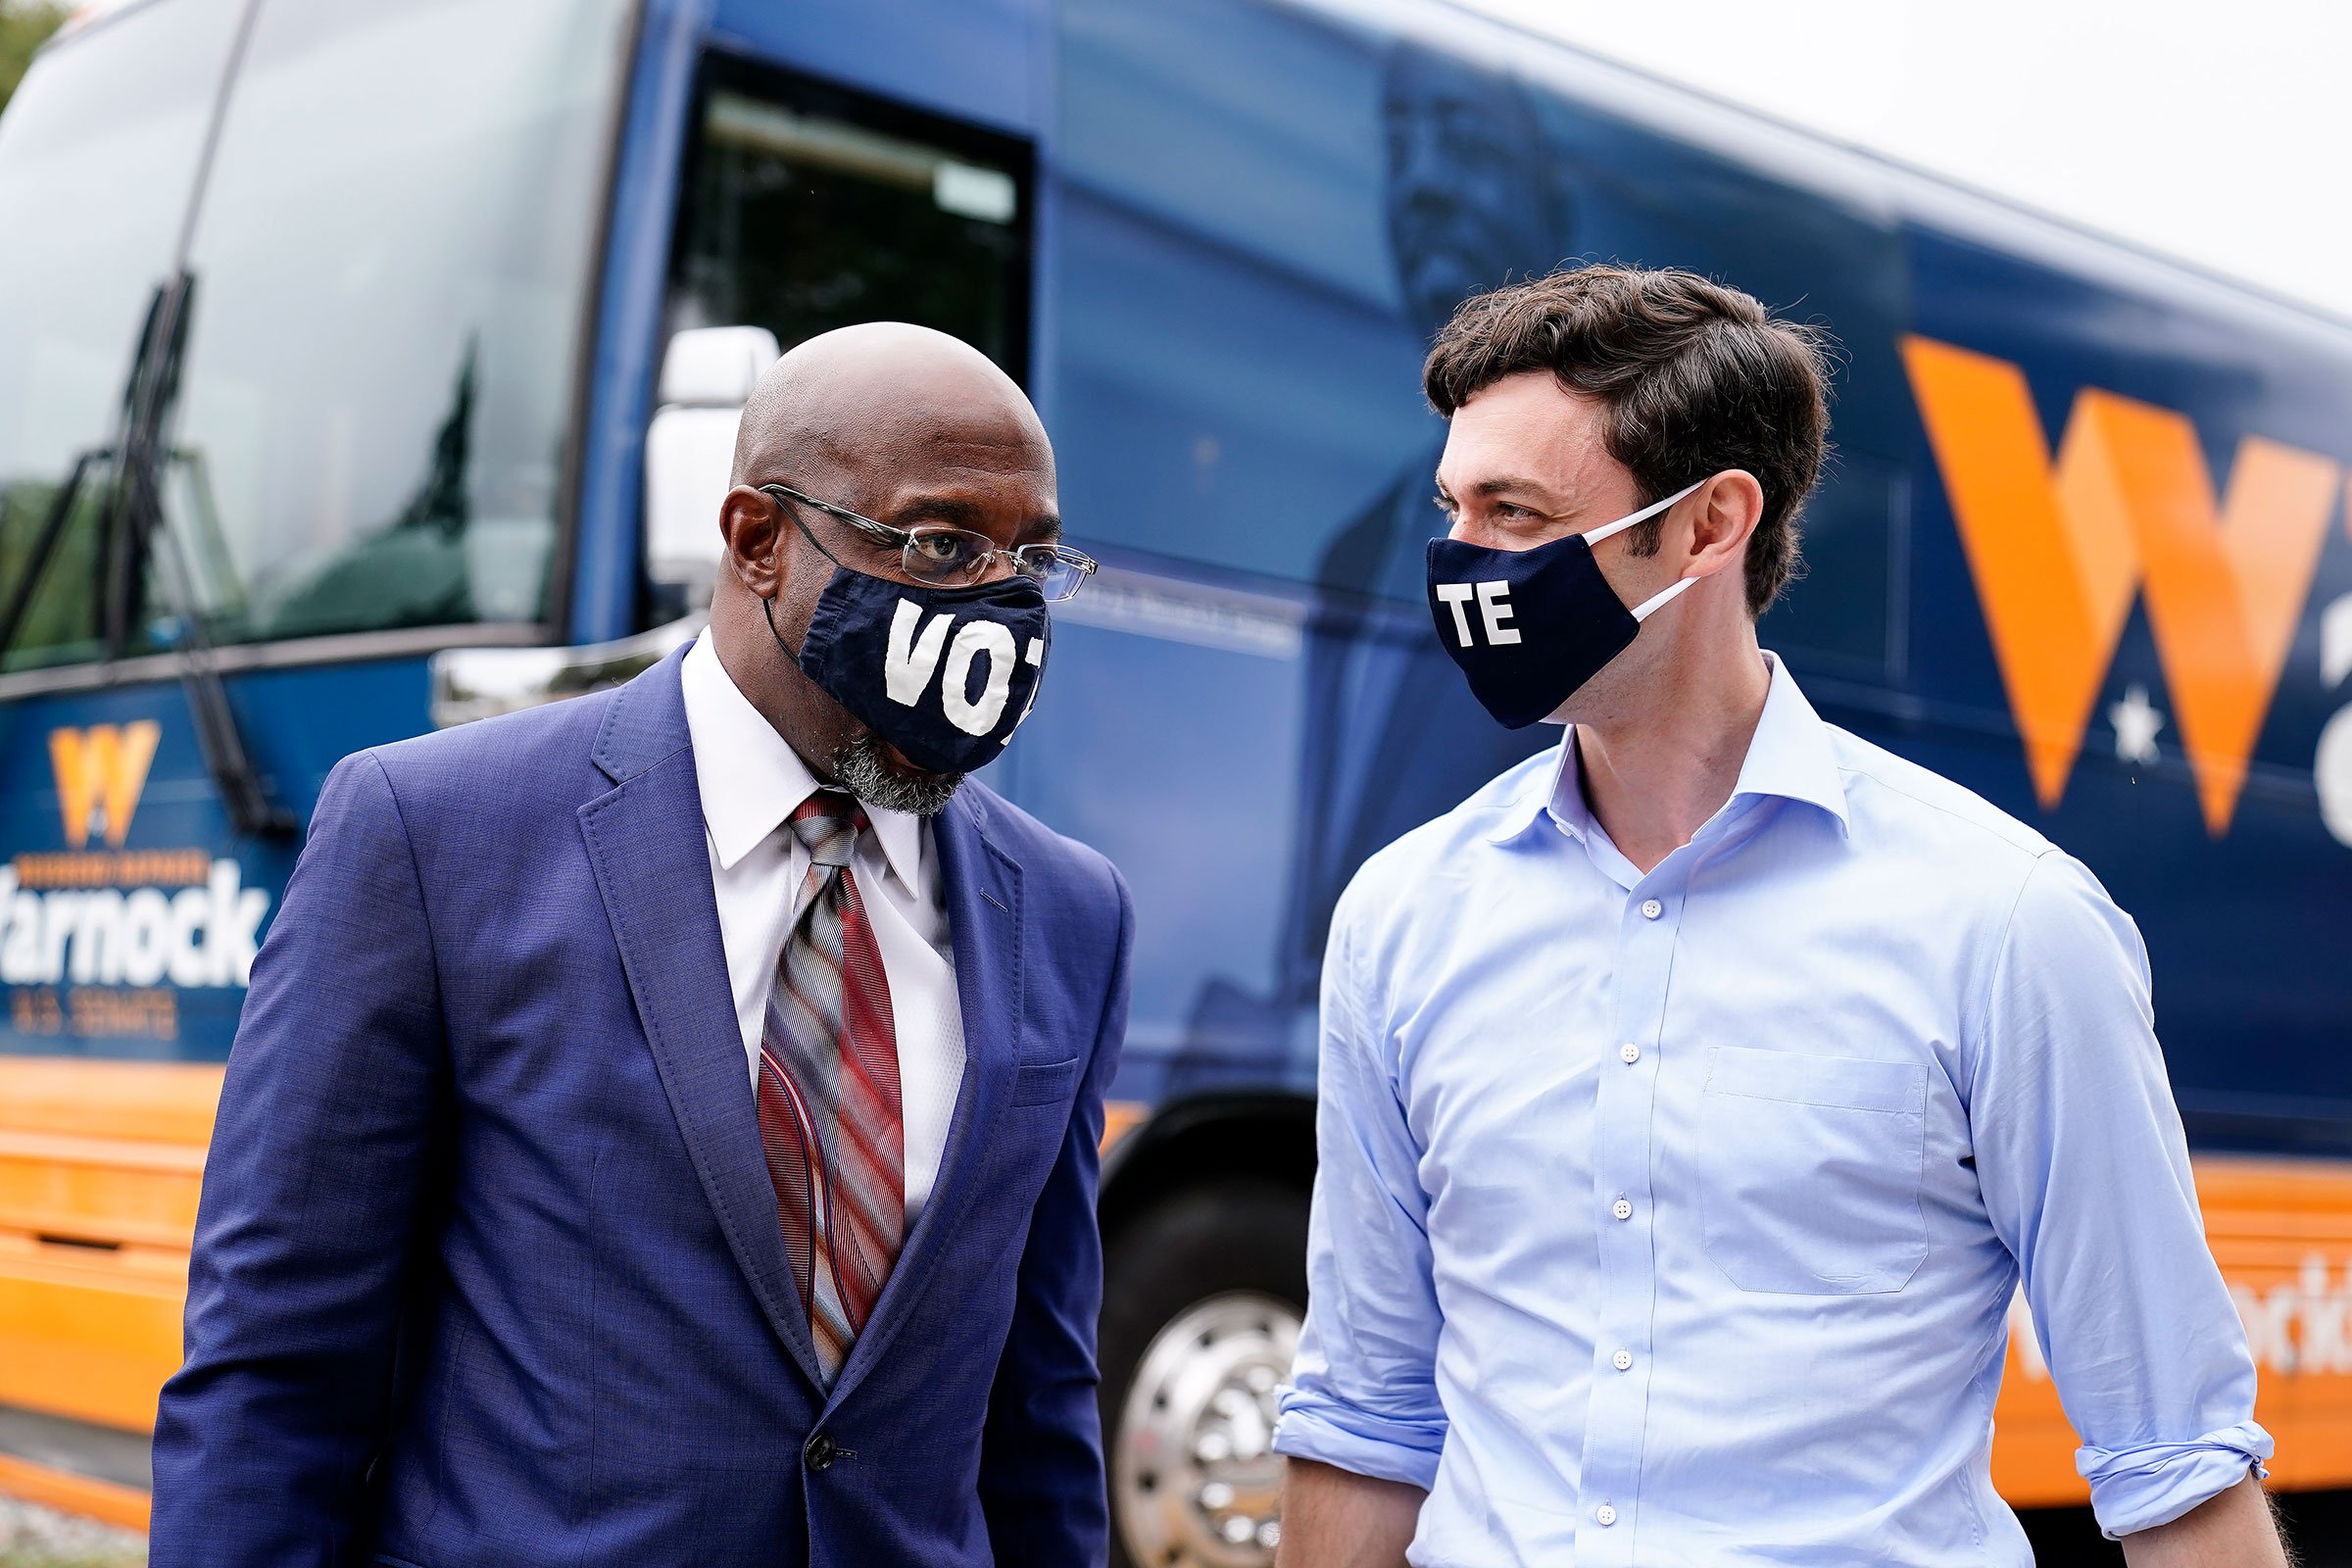 Democratic candidate for Senate Jon Ossoff, right, and Democratic candidate for Senate Raphael G. Warnock, left, arrive before they speak to a crowd during a  Get Out the Early Vote  event at in Jonesboro, Ga. on Tuesday, Oct. 27, 2020.